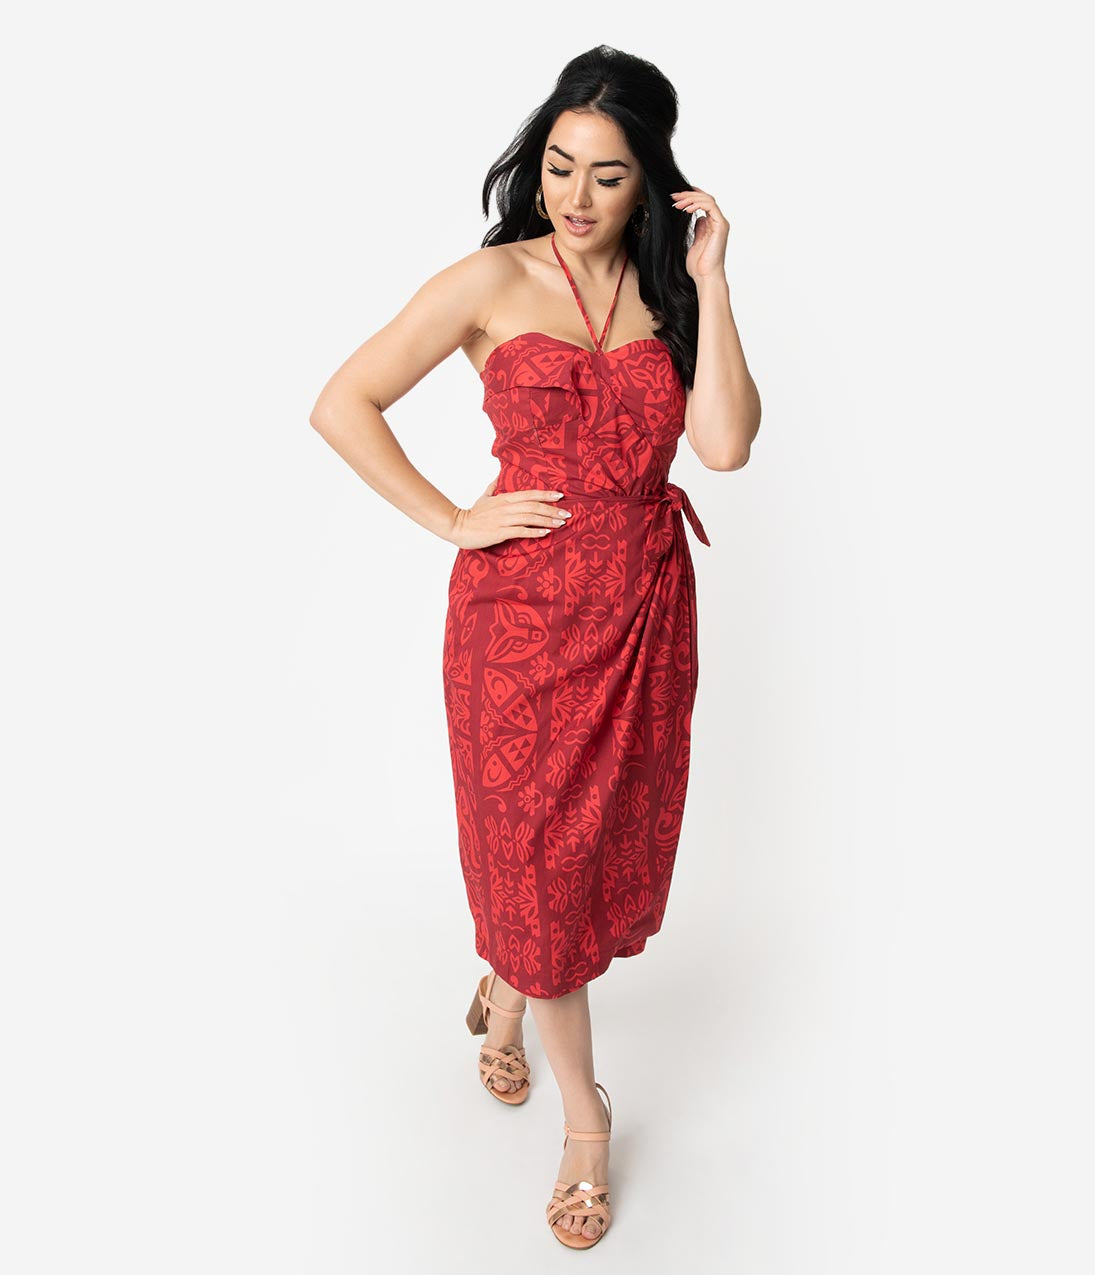 db7e32cf9 Retro Tiki Dress – Tropical, Hawaiian Dresses Alfred Shaheen Red Tiki  Pareau Print Sarong $128.00